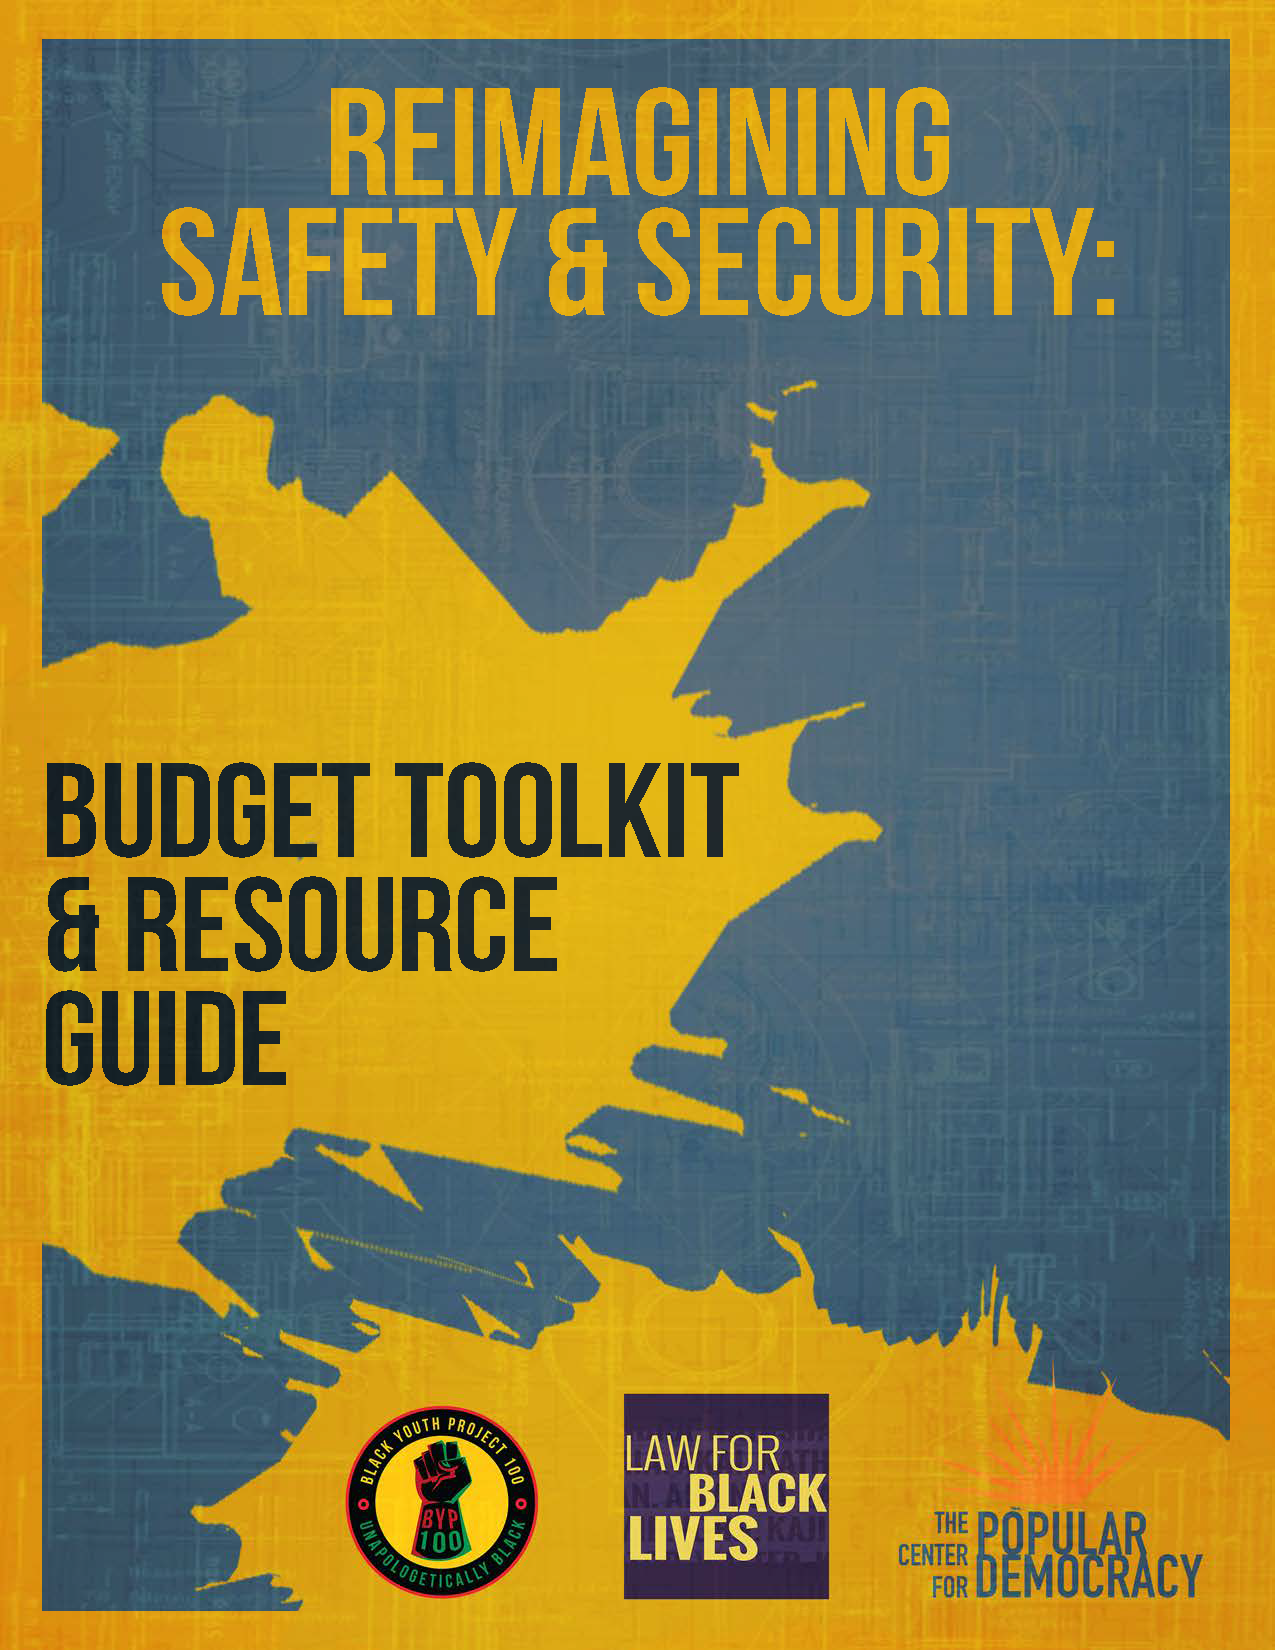 Freedom to Thrive Budget Toolkit and Resource Guide - This toolkit provides step-by-step instructions on how to complete your own budget analysis, how to set budget priorities that reflect your community needs, and includes resources about ongoing Invest/Divest campaigns.